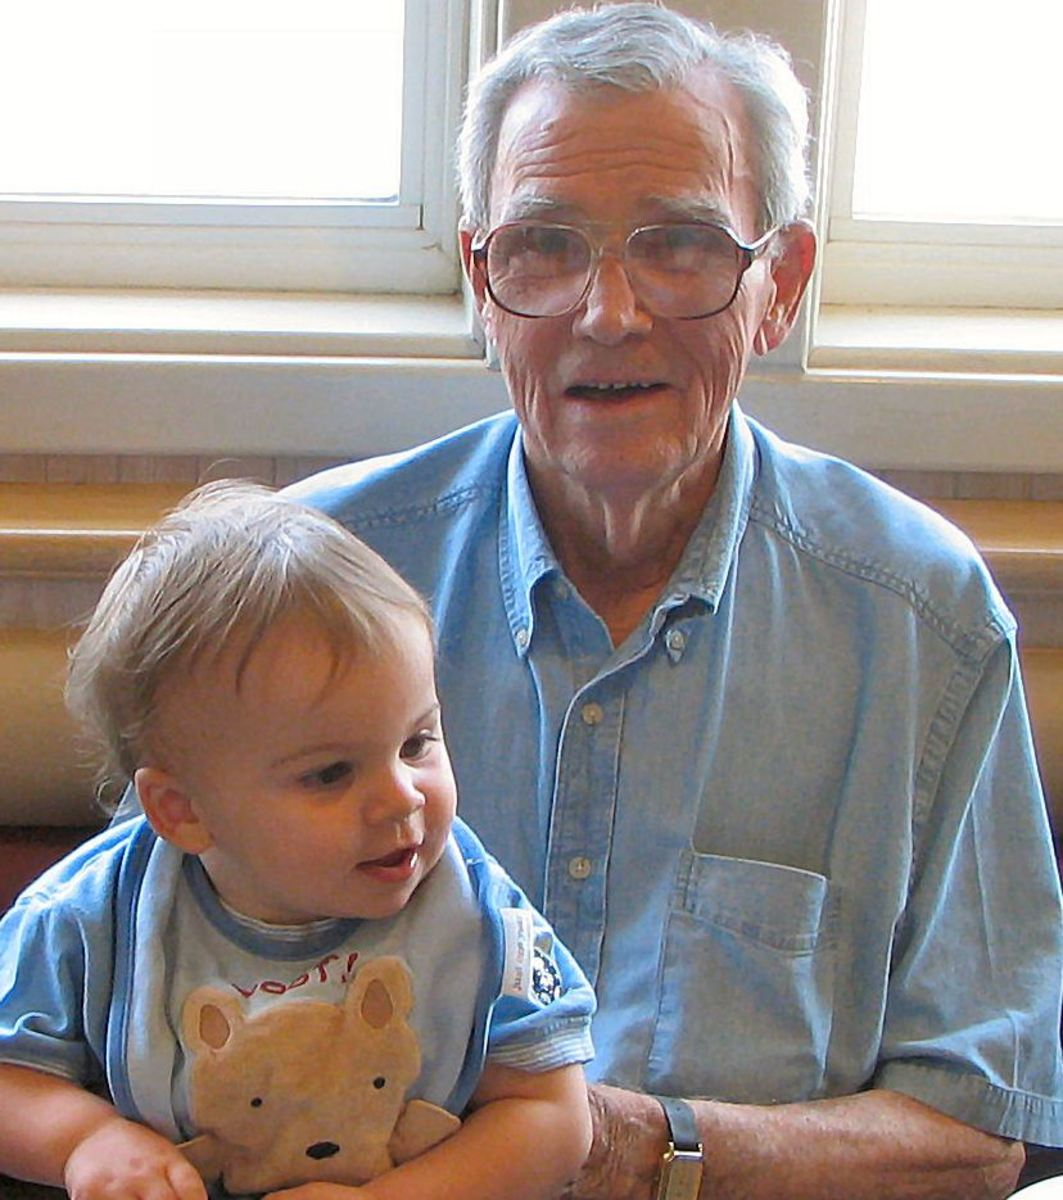 In loving memory of Henry W Britain, grandfather and great grandfather - shown here with great-grandson Ian